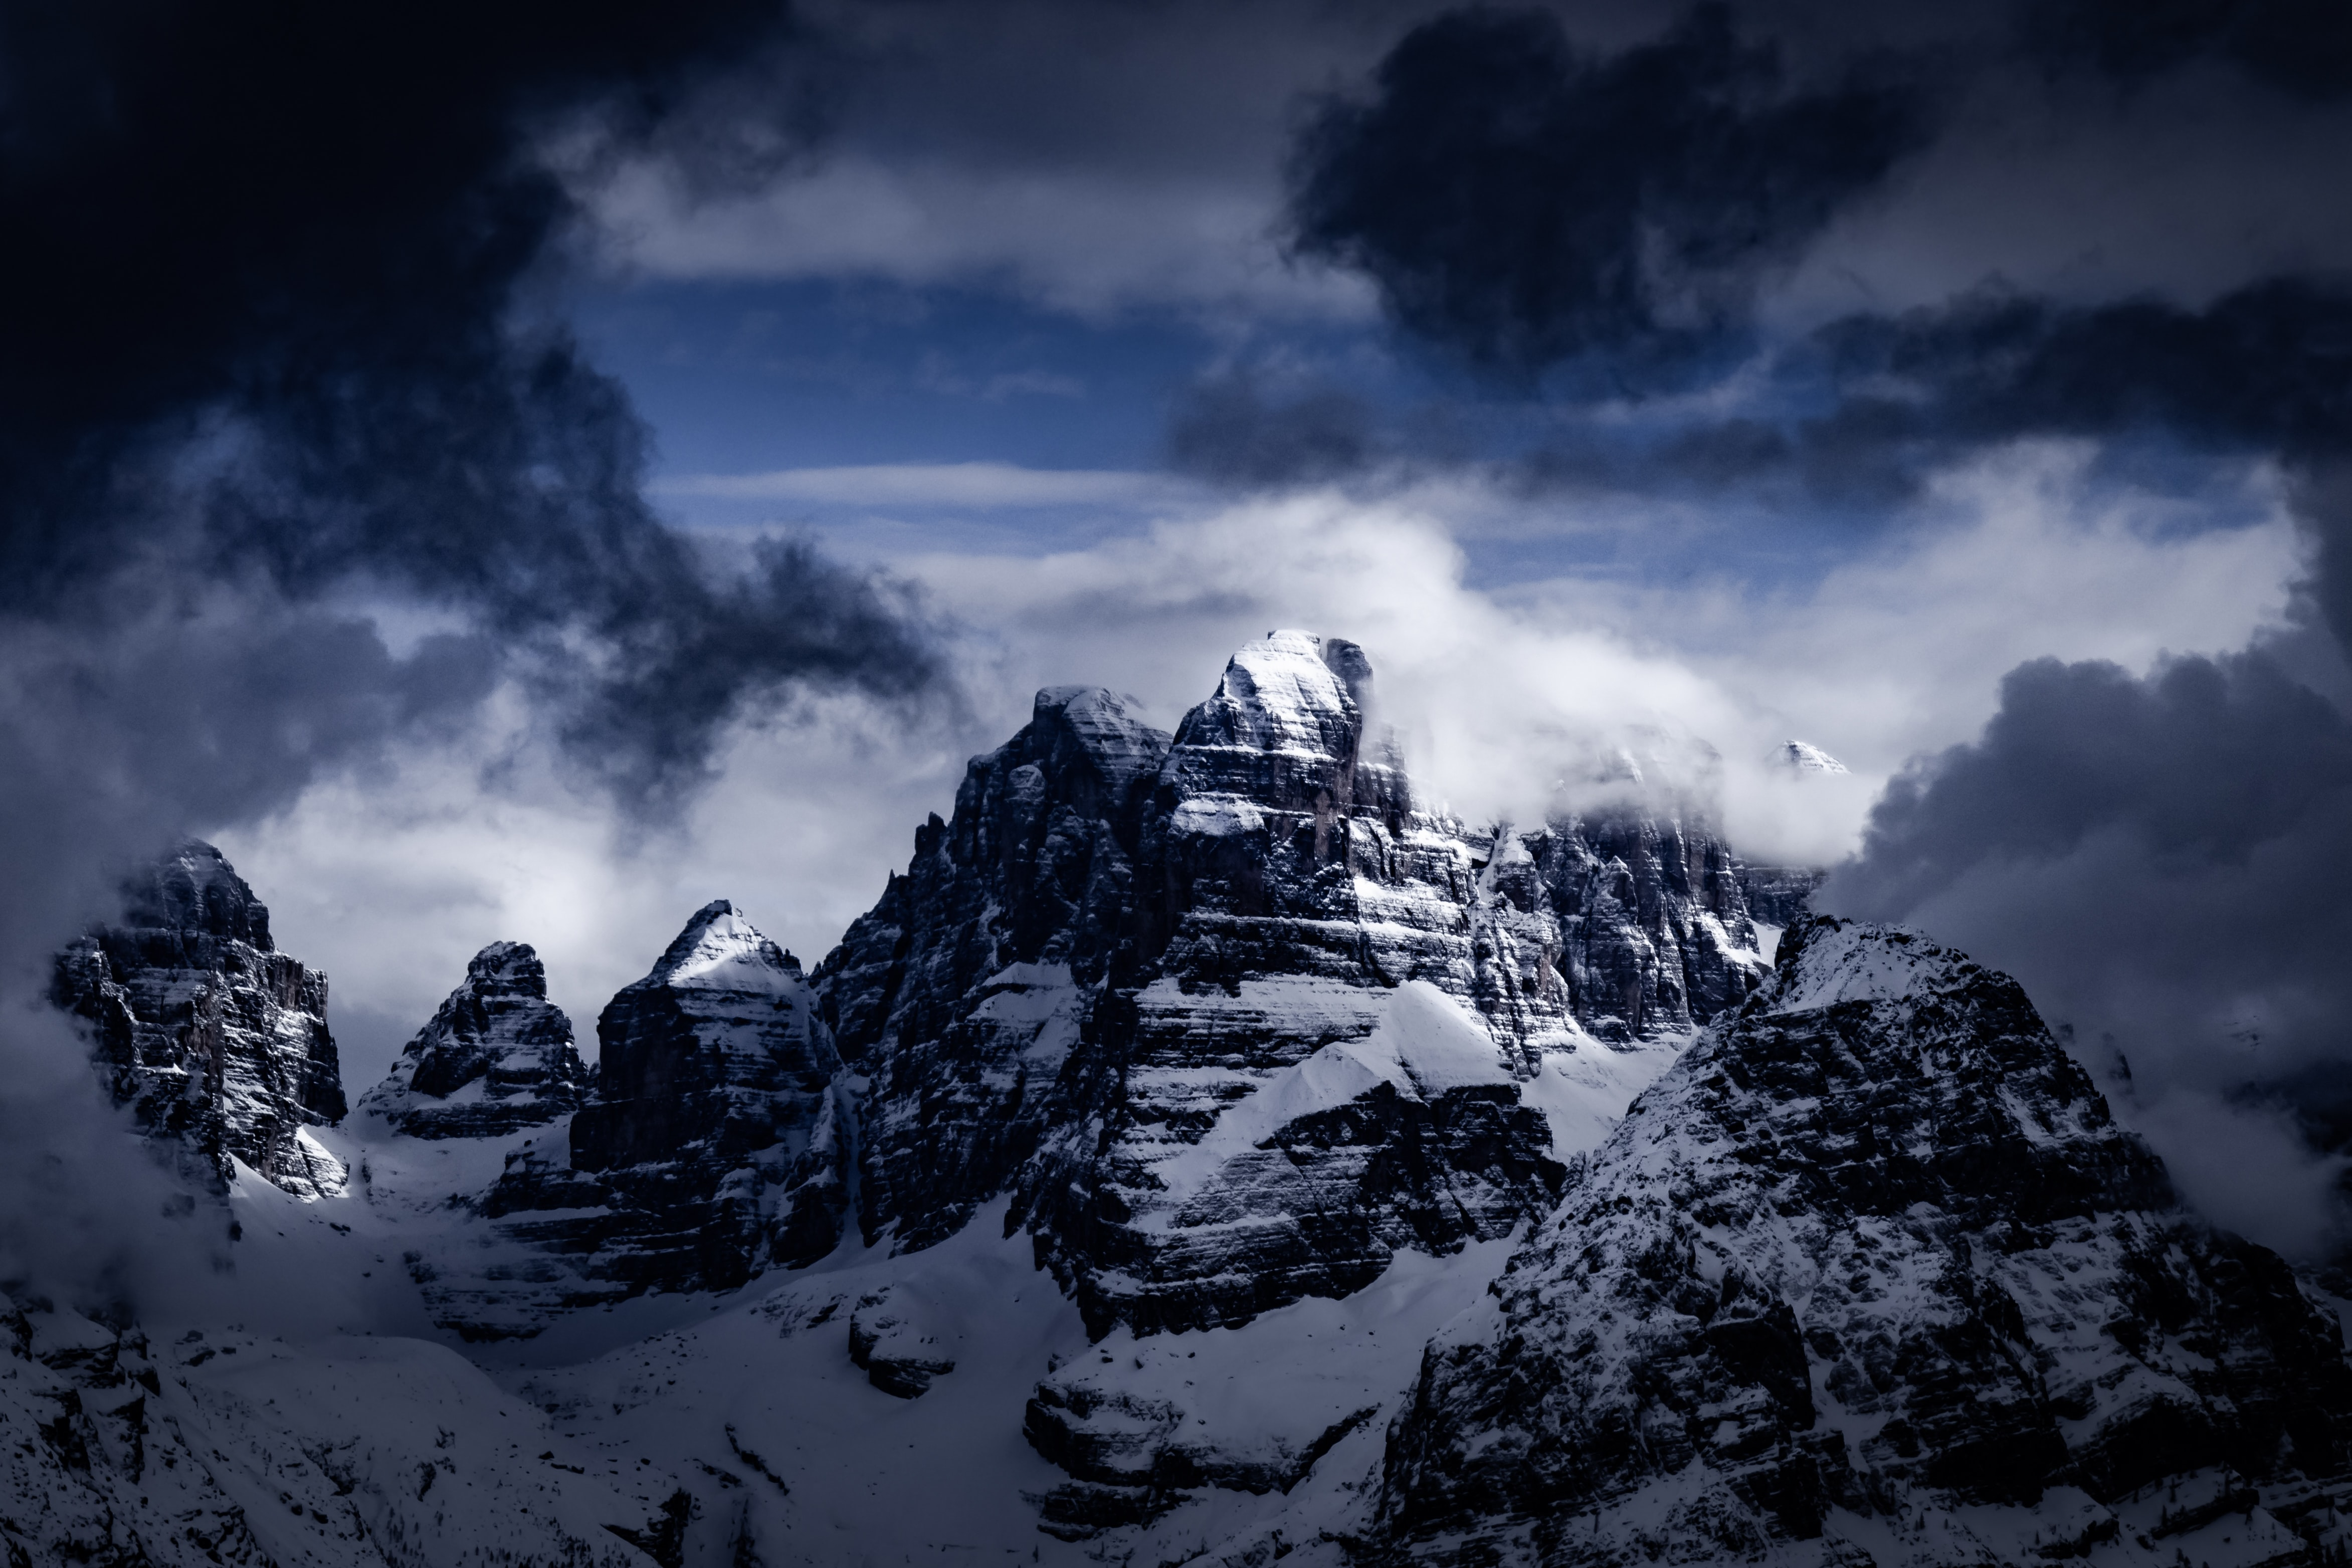 landscape photo of mountain with snow